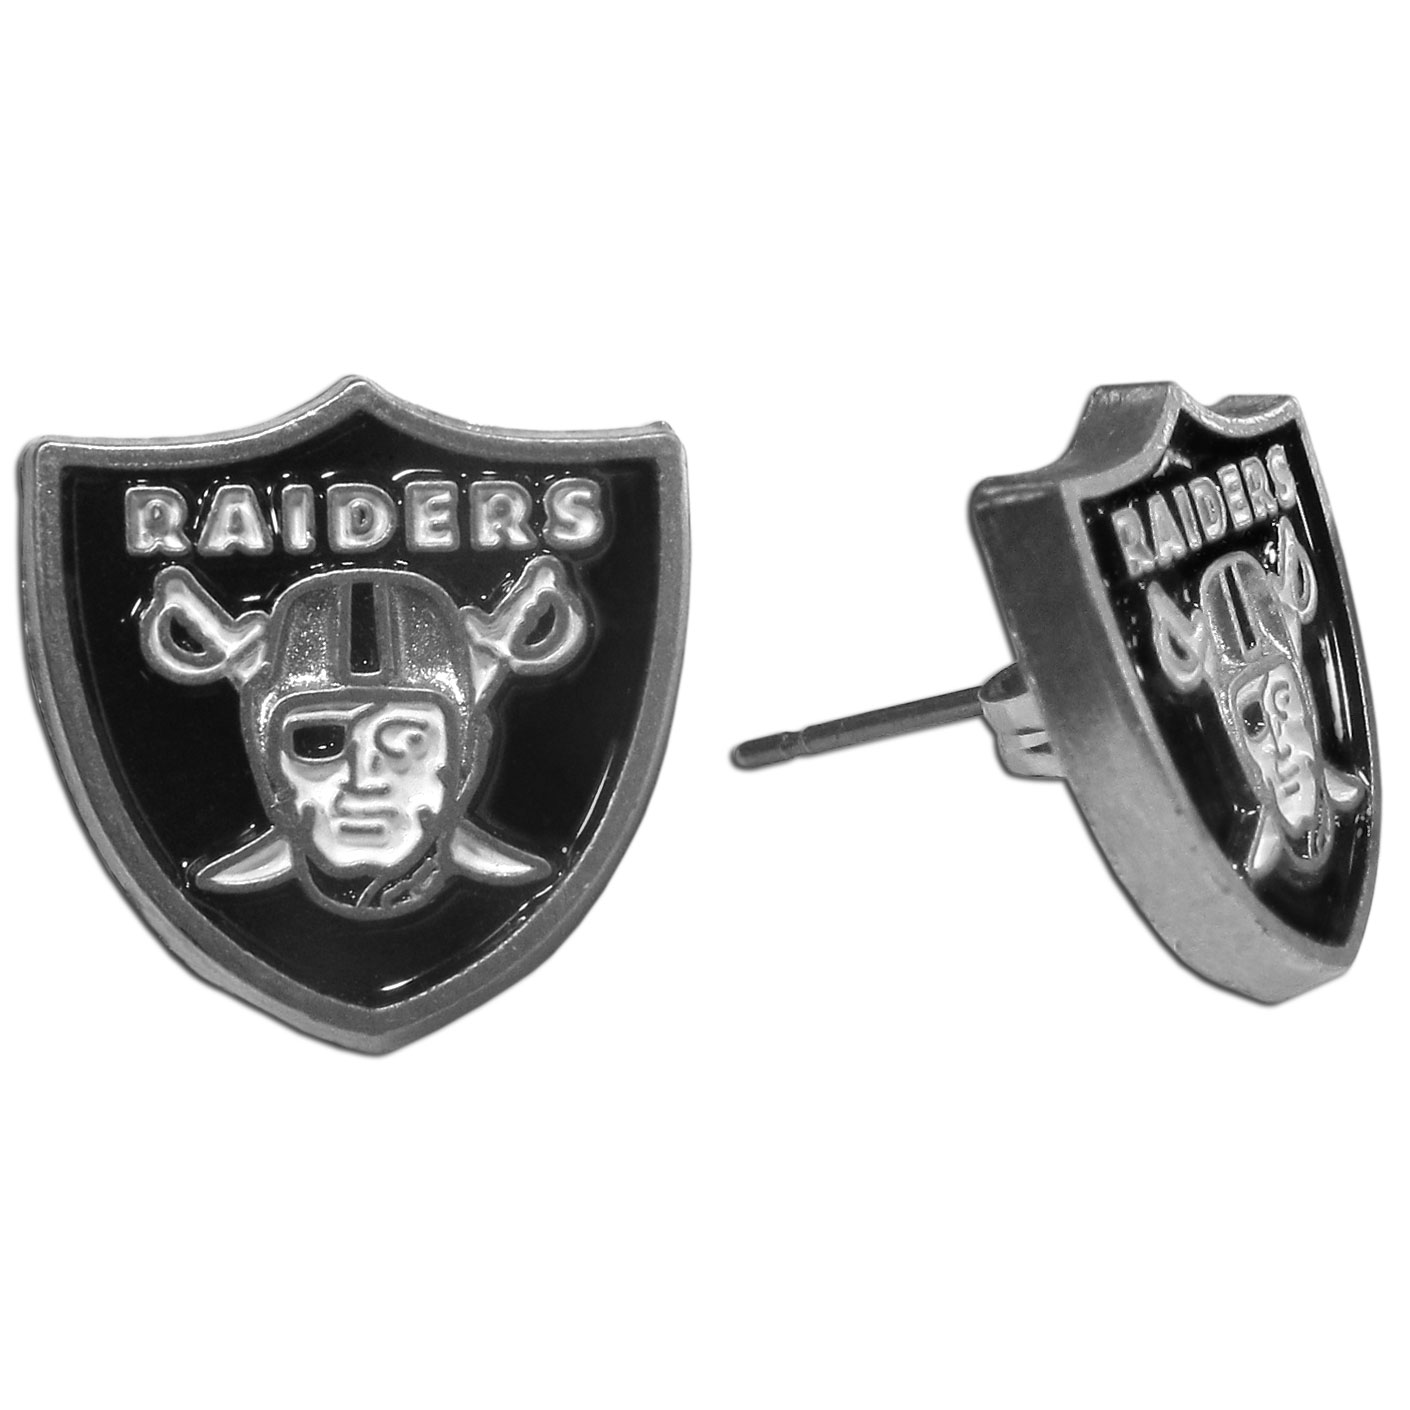 Studded NFL Earrings - Oakland Raiders - Our studded NFL team logo earrings are carved in 3D detail and enameled in team colors. Check out our entire line of licensed NFL  earrings! Officially licensed NFL product Licensee: Siskiyou Buckle Thank you for visiting CrazedOutSports.com